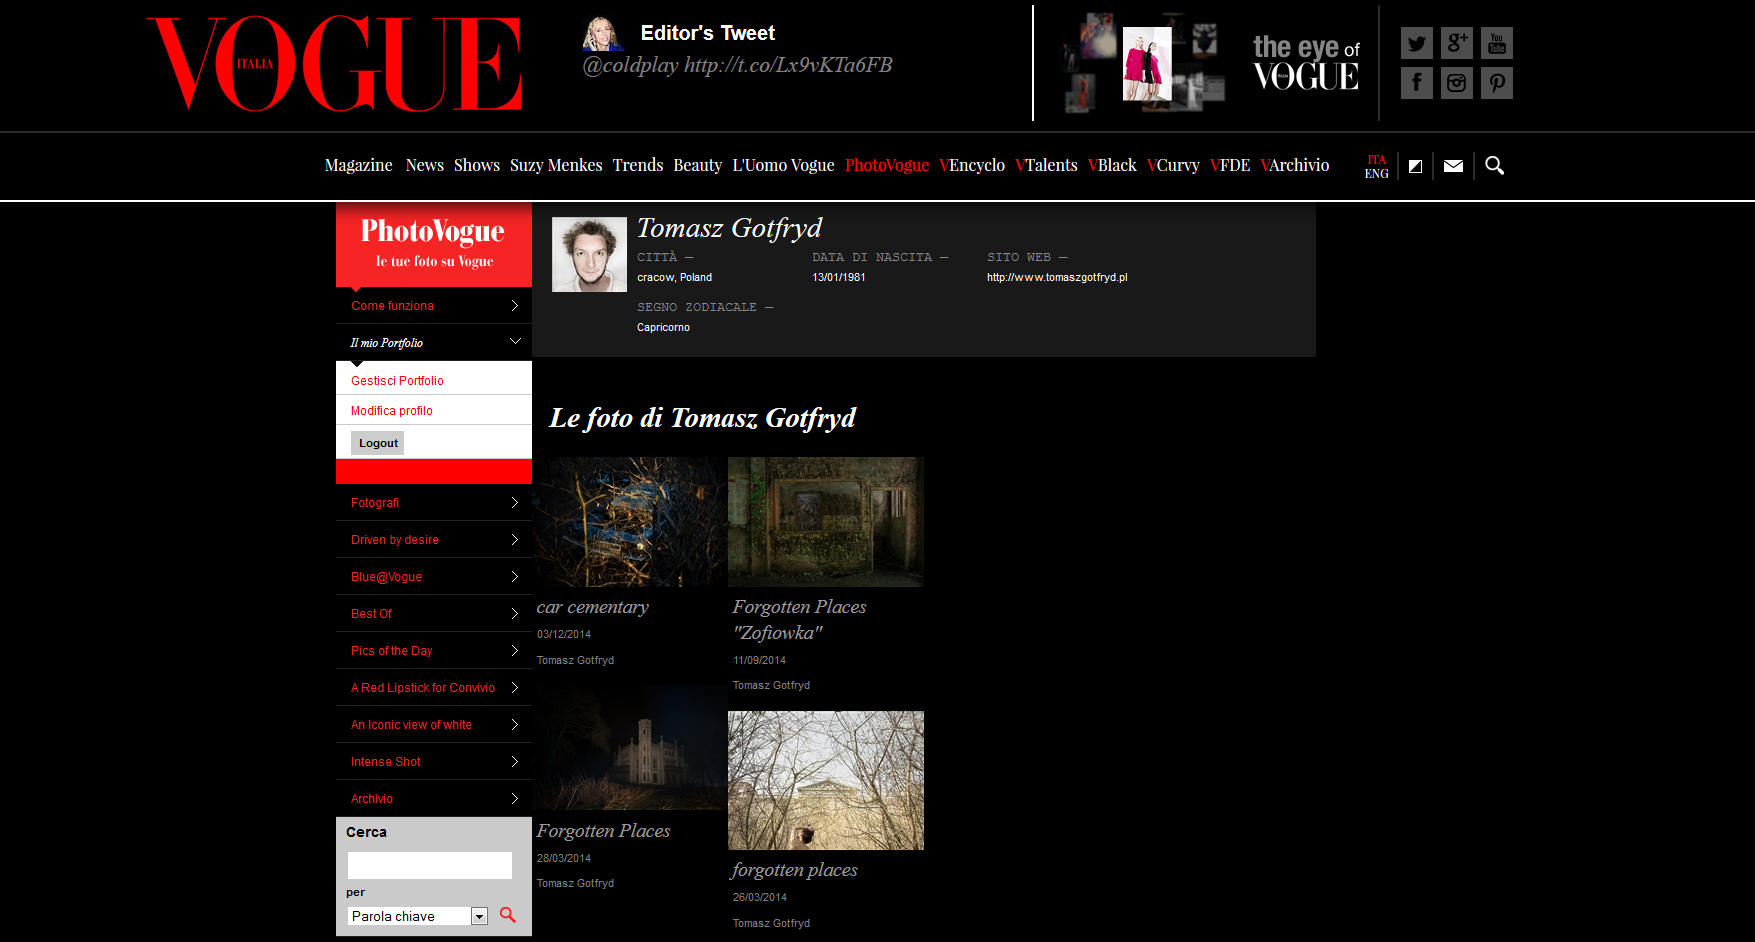 My portfolio in Vogue